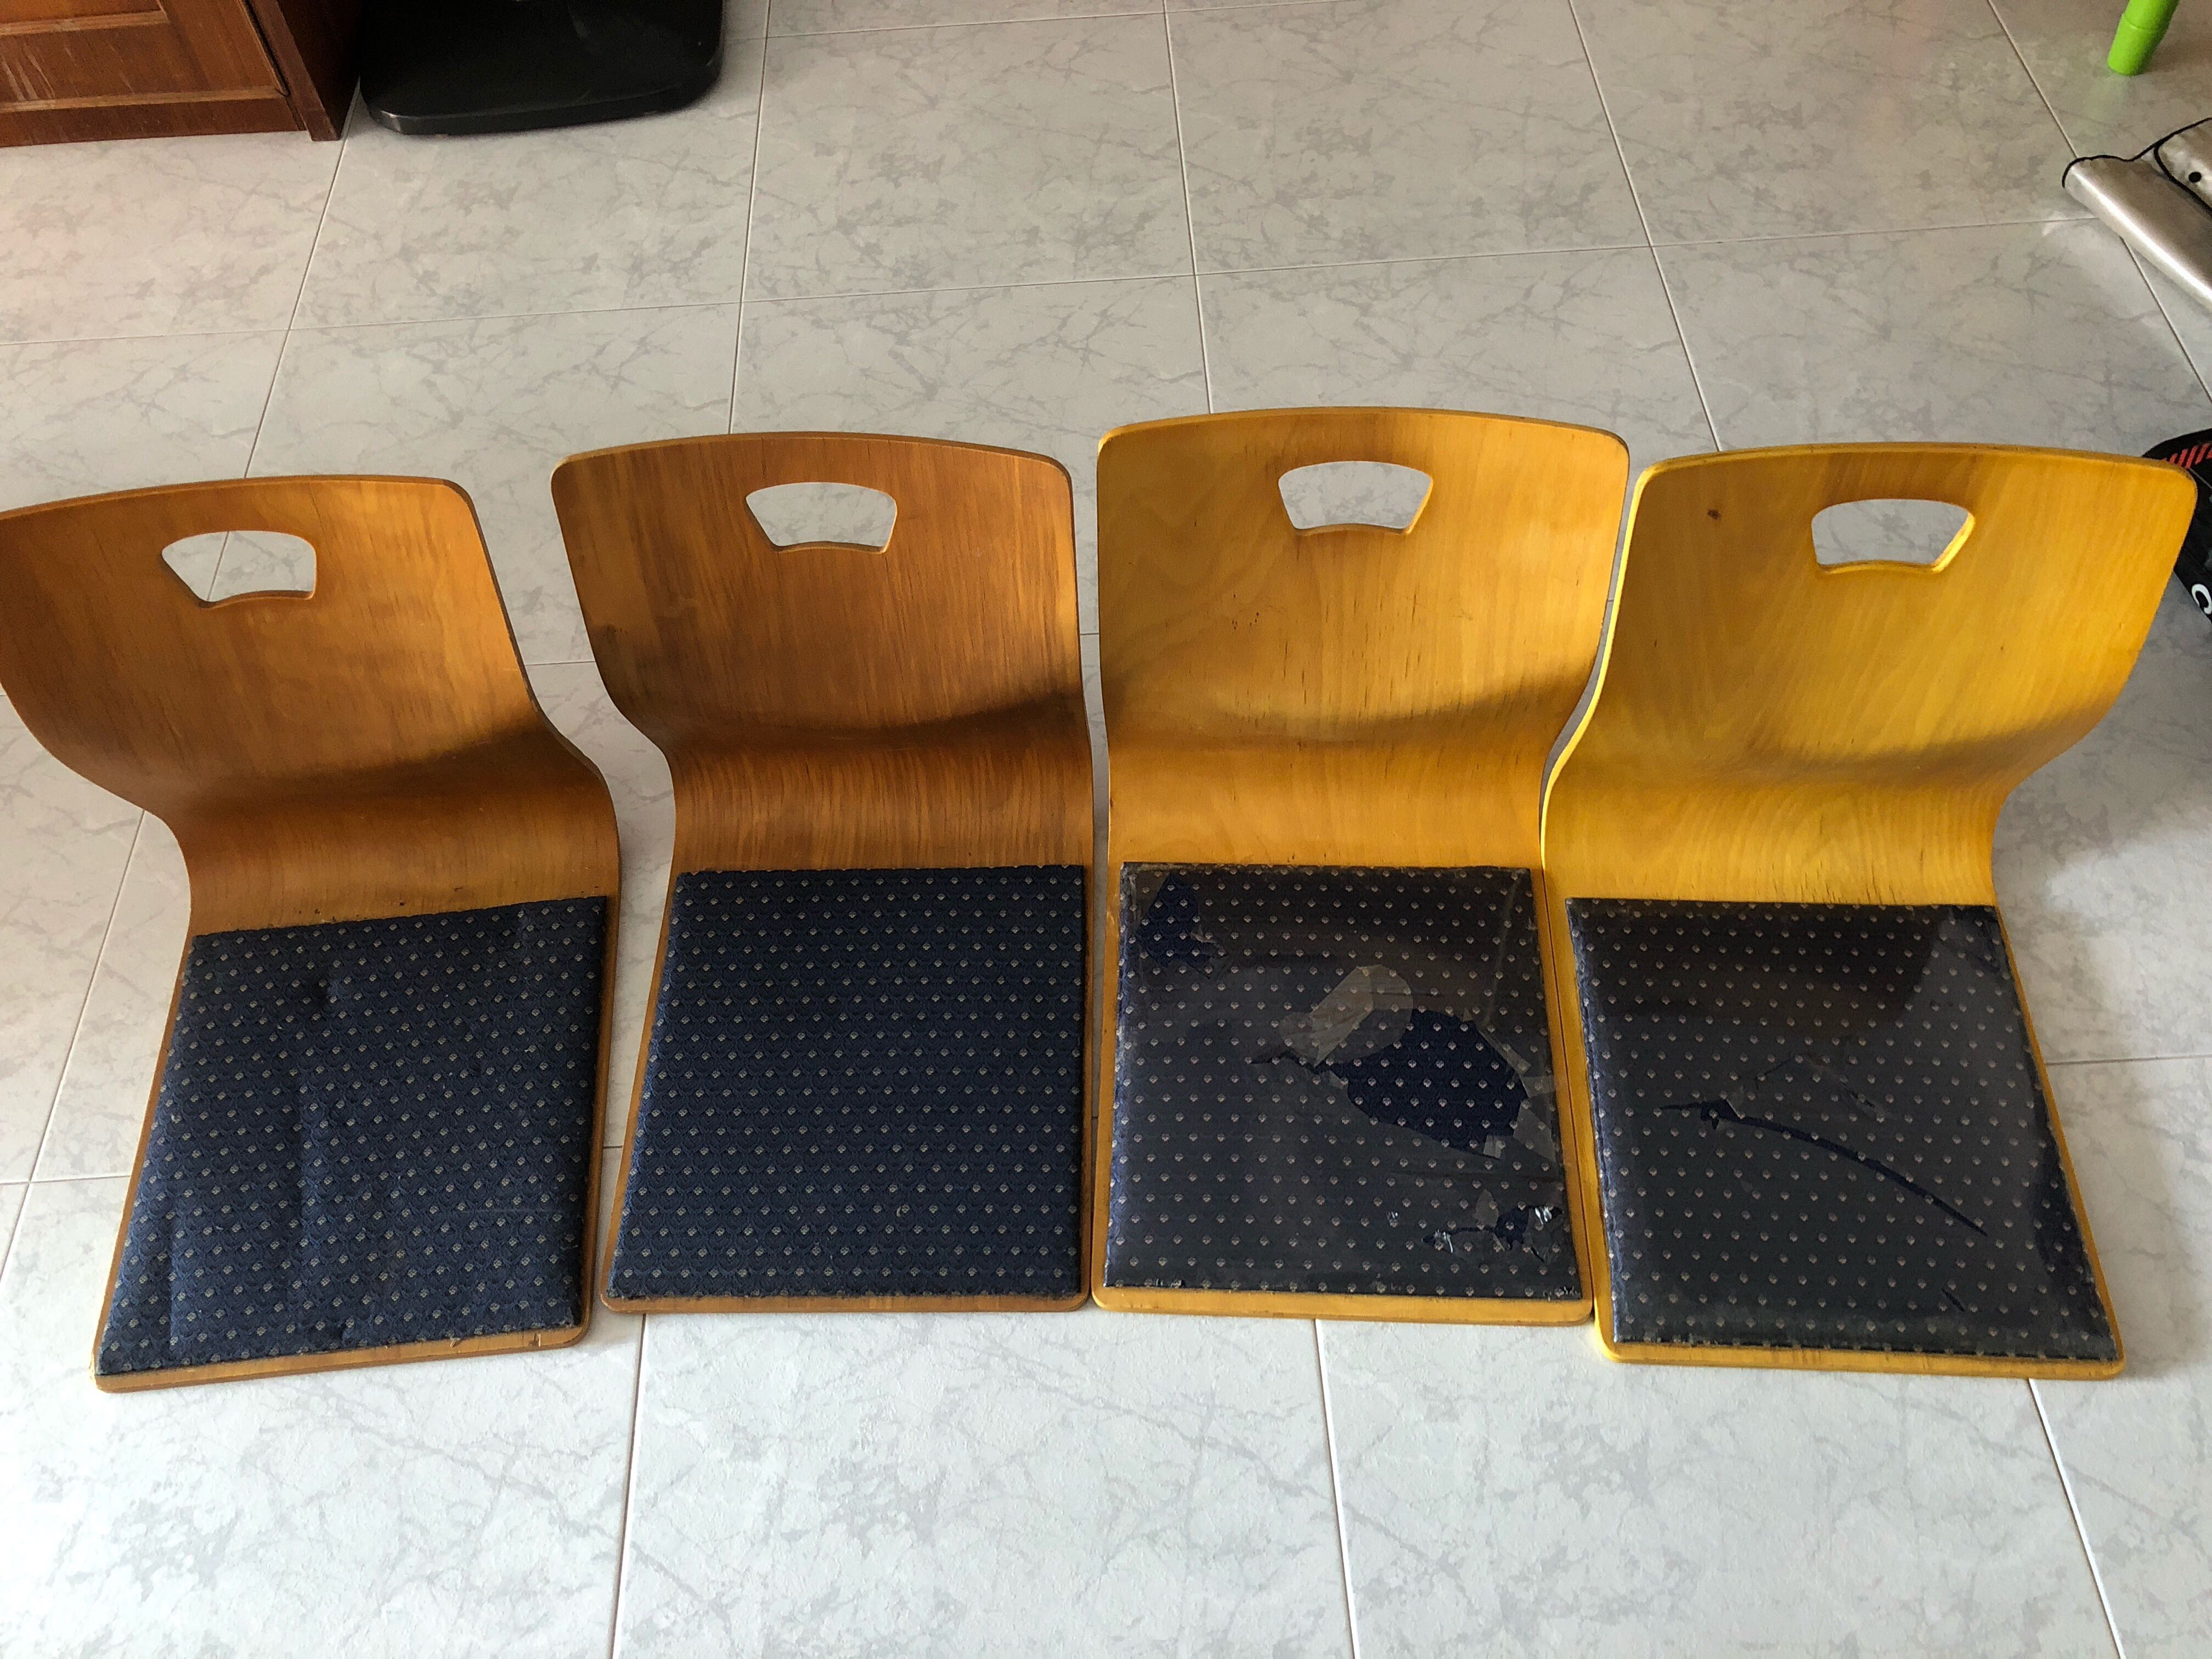 & Wooden tatami chair Furniture Tables u0026 Chairs on Carousell